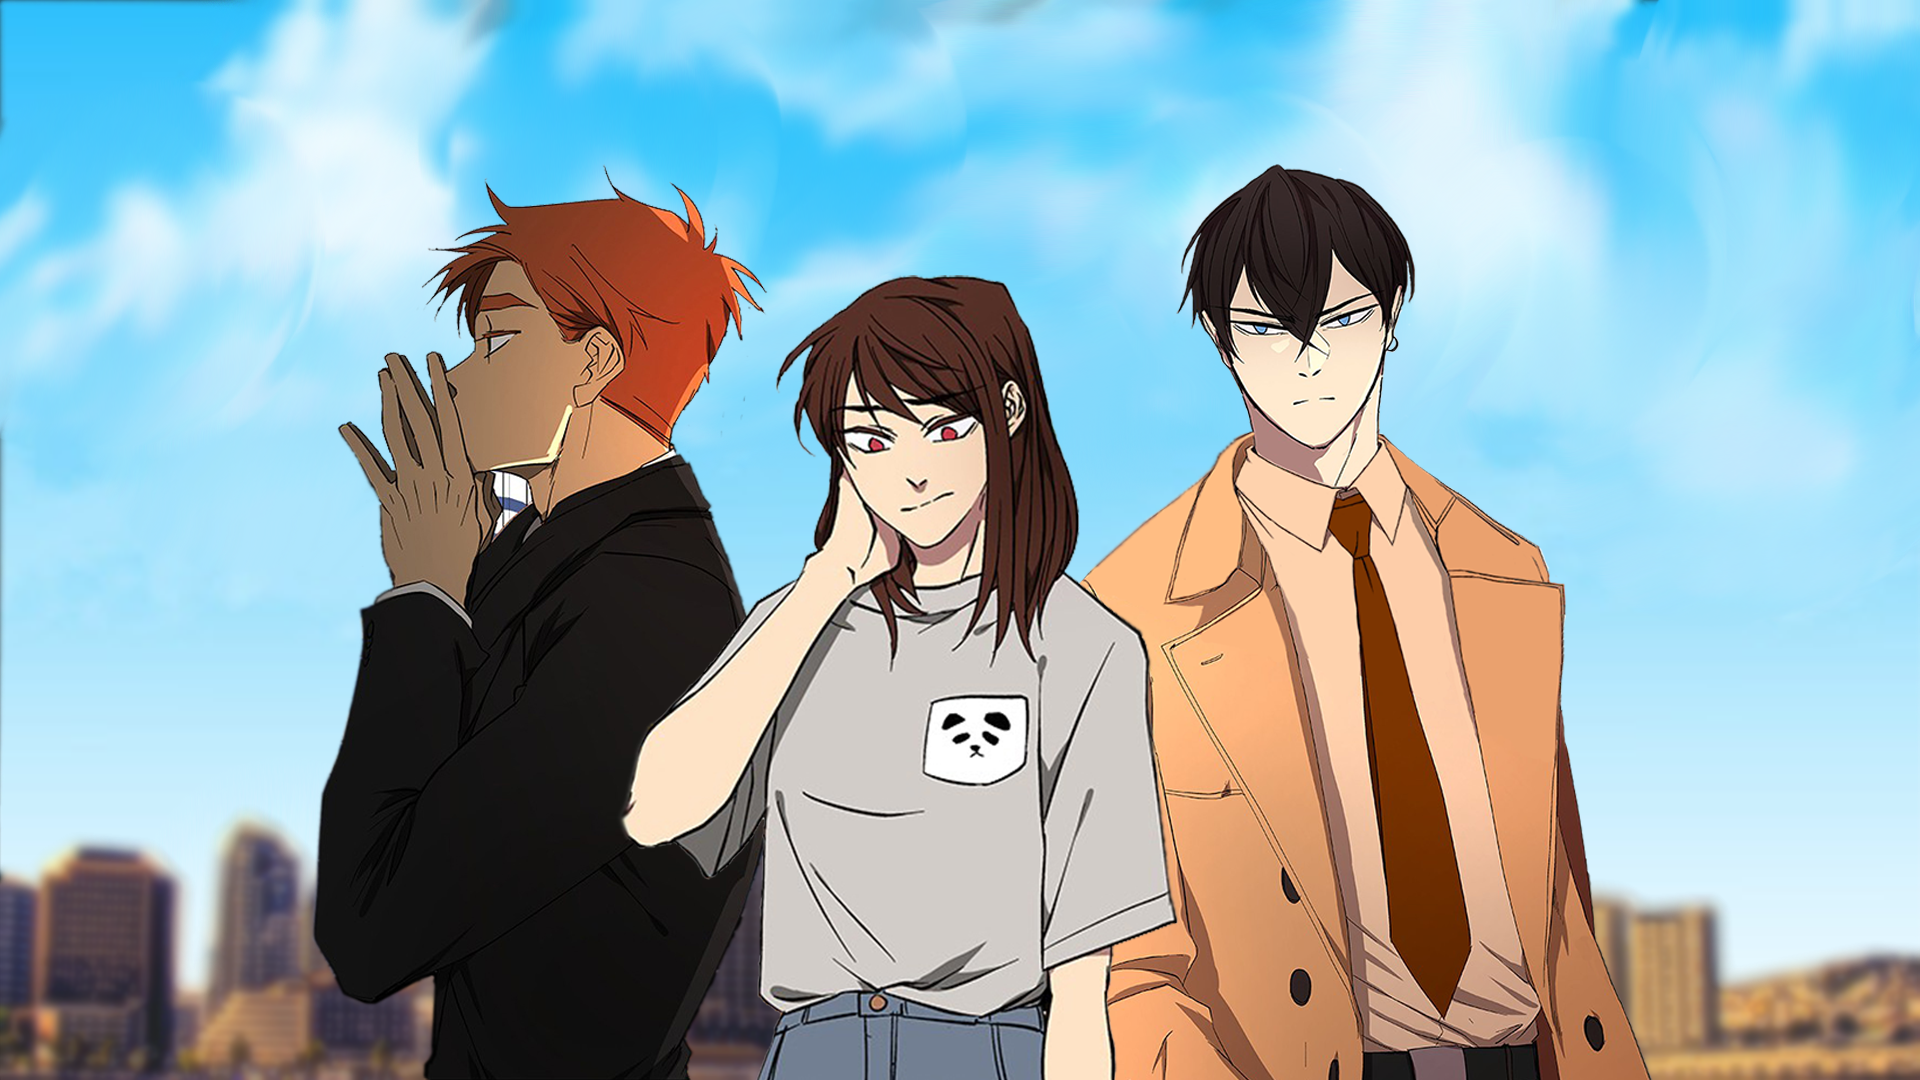 The three main characters in this webtoon standing together. Shin-Ae is  in the middle.